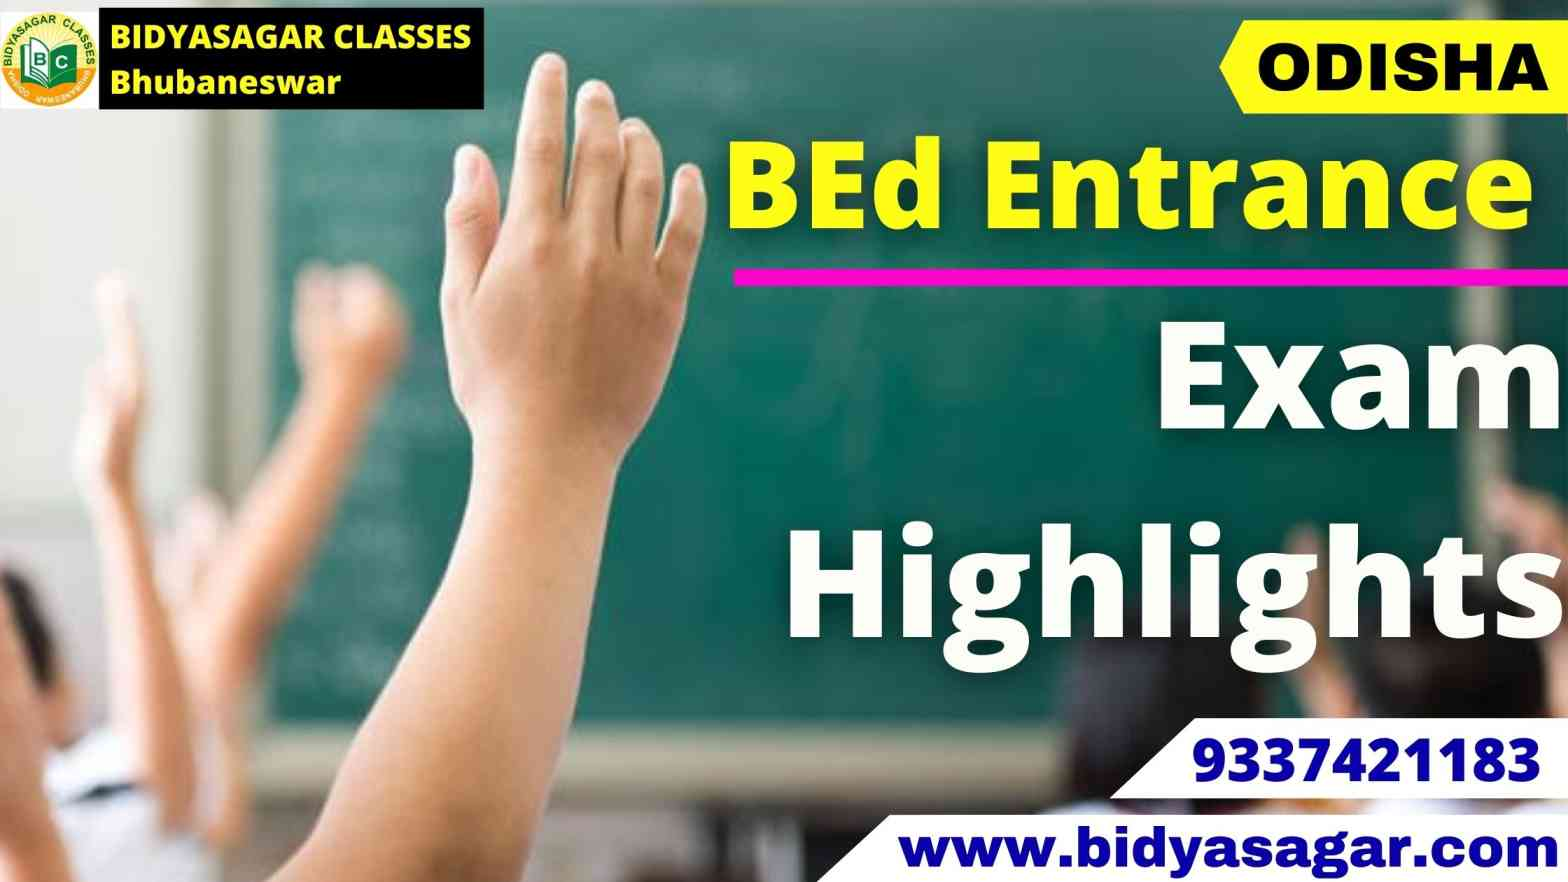 Odisha State B.Ed Entrance Exam 2021 Highlights